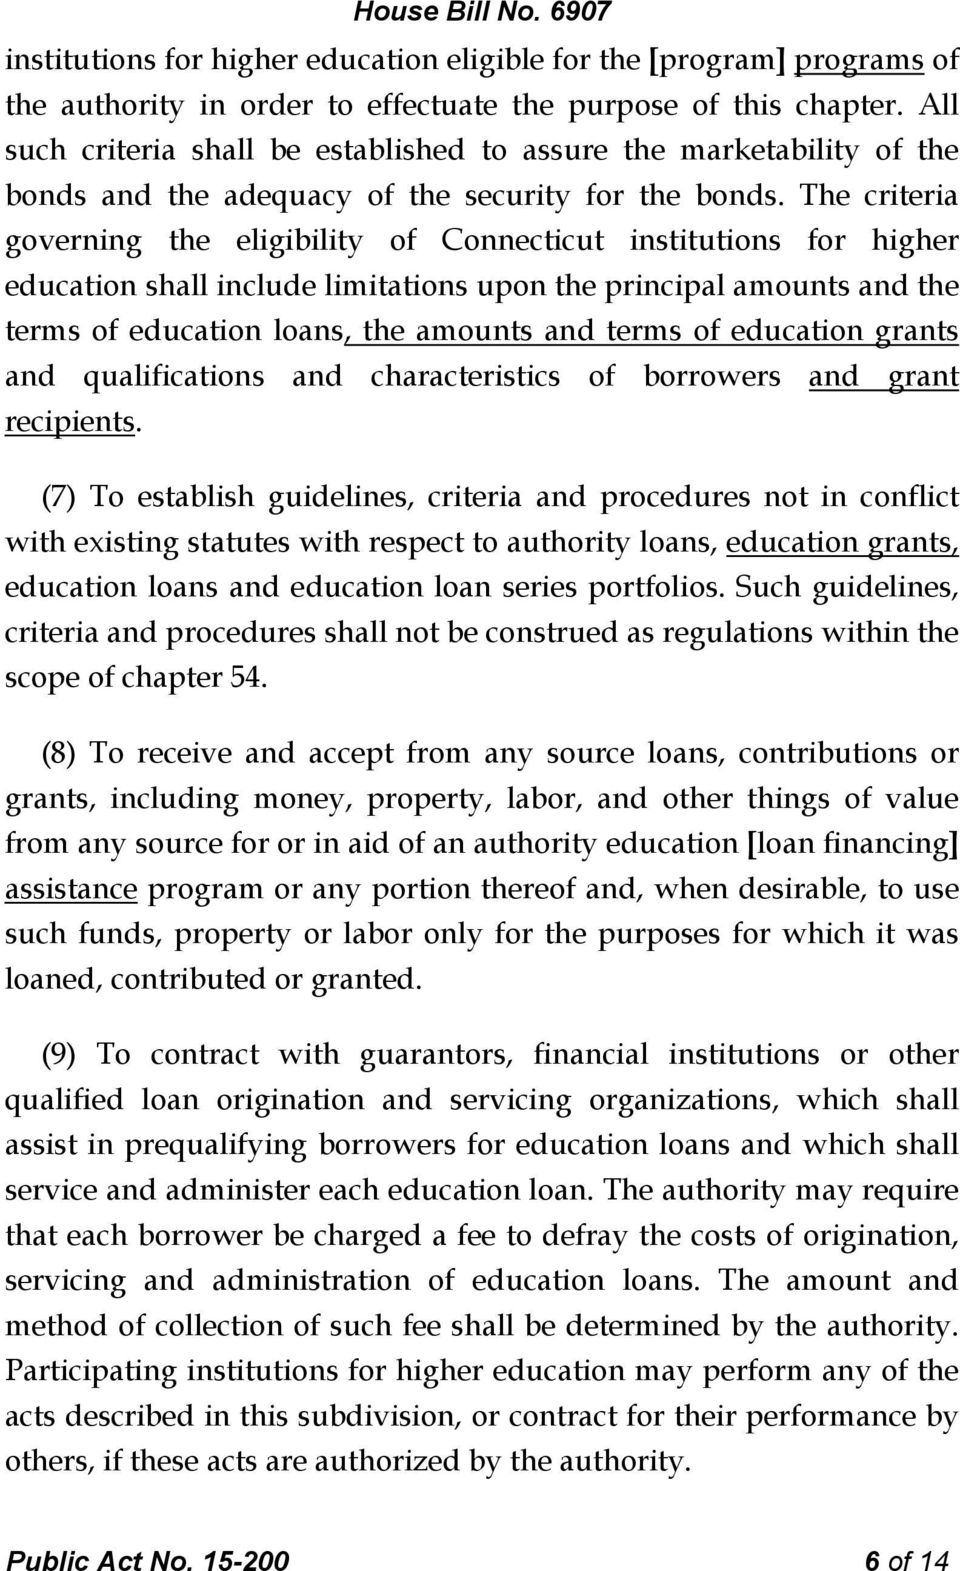 The criteria governing the eligibility of Connecticut institutions for higher education shall include limitations upon the principal amounts and the terms of education loans, the amounts and terms of